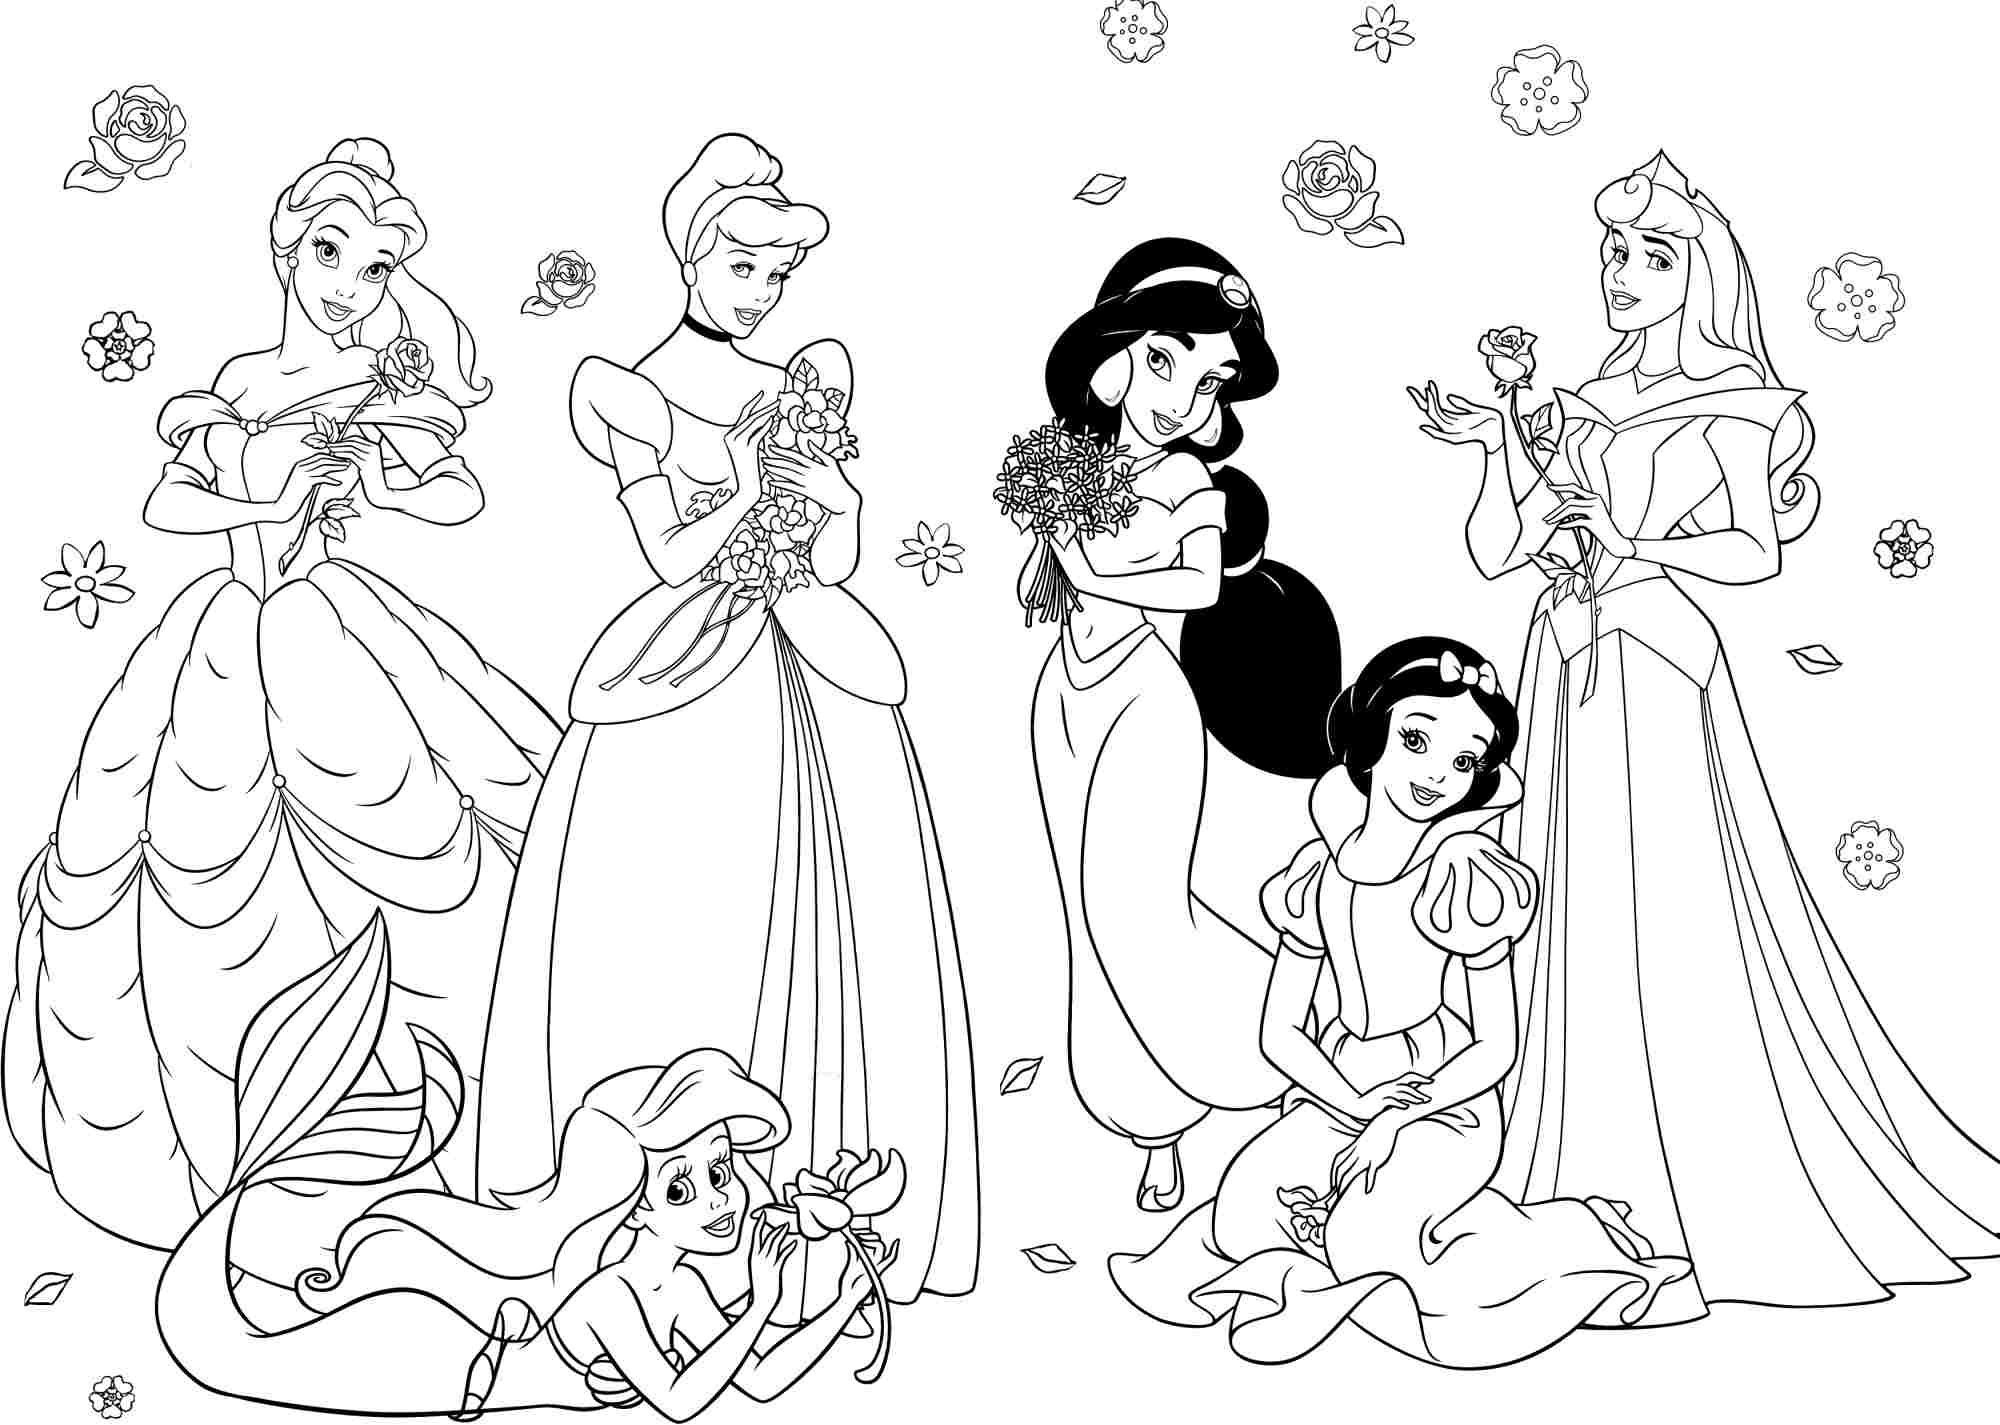 Princess Coloring Pages For Girls - Free Large Images | Crafting - Free Printable Princess Coloring Pages